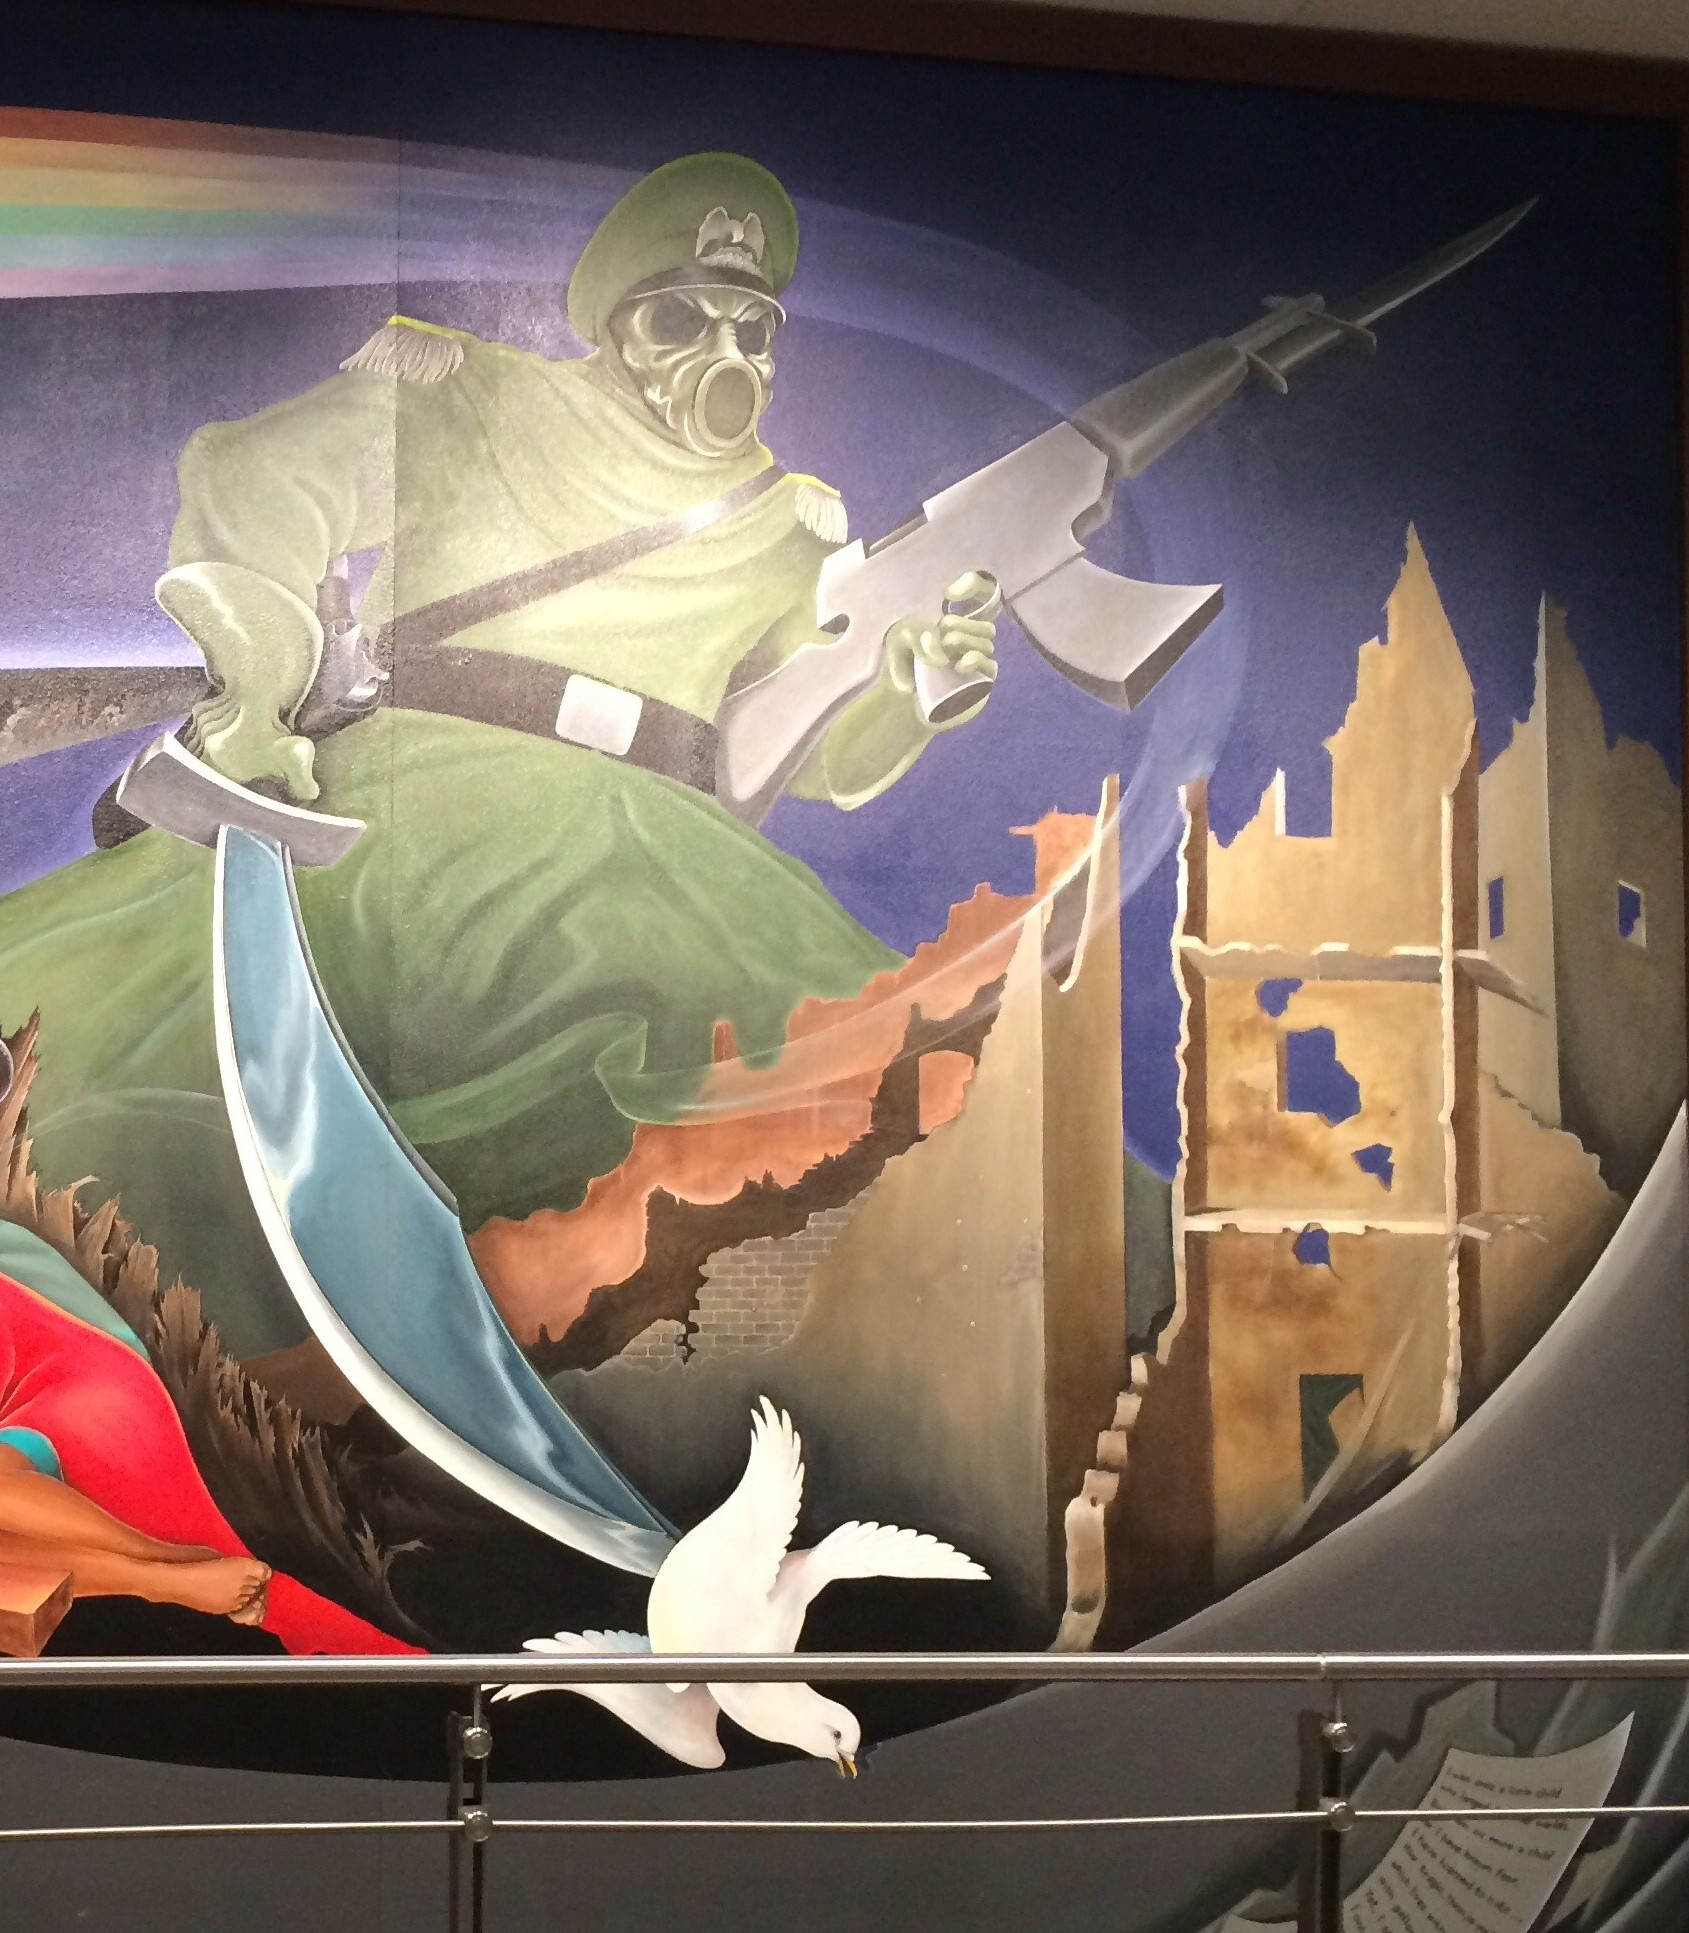 Eerie murals at the denver airport have conspiracy for Denver airport mural conspiracy